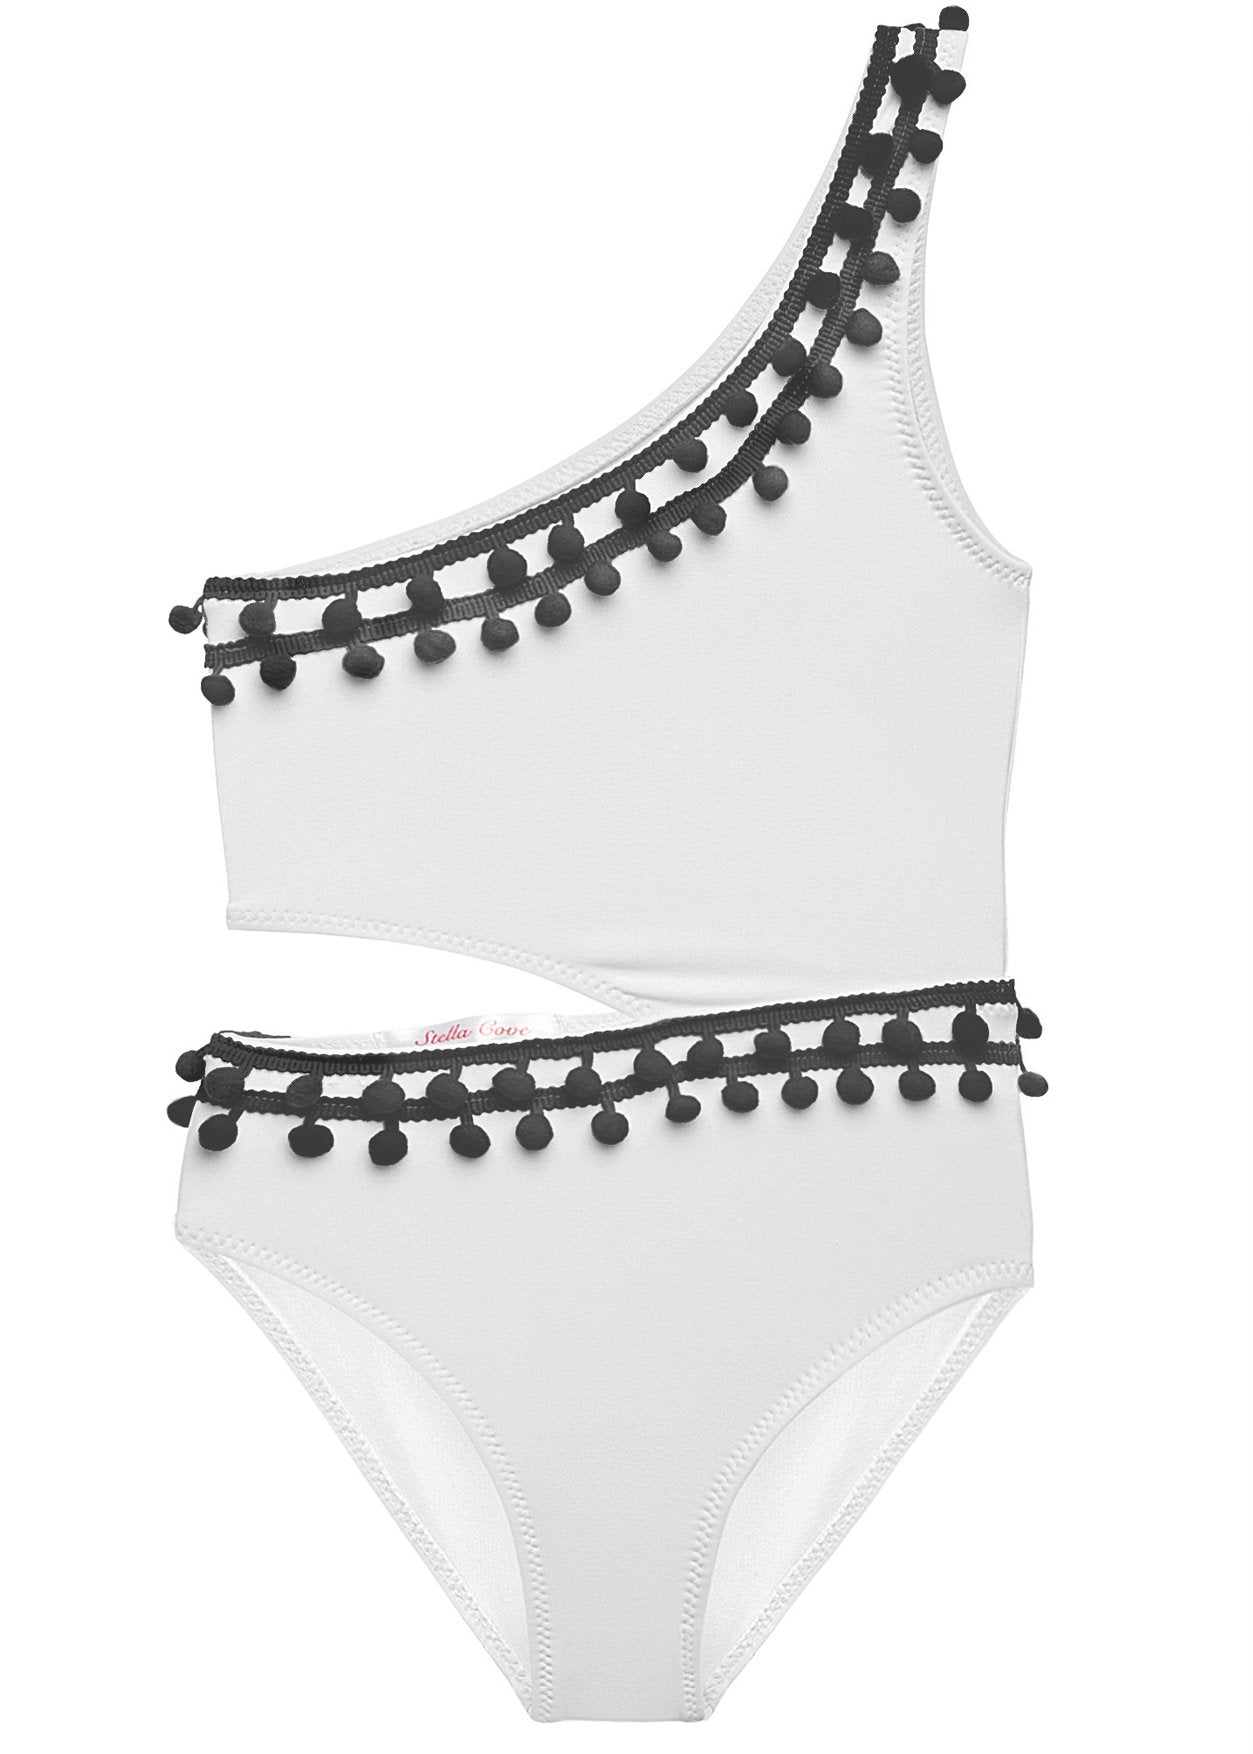 White Side-Cut Swimsuit with Black Pom Poms